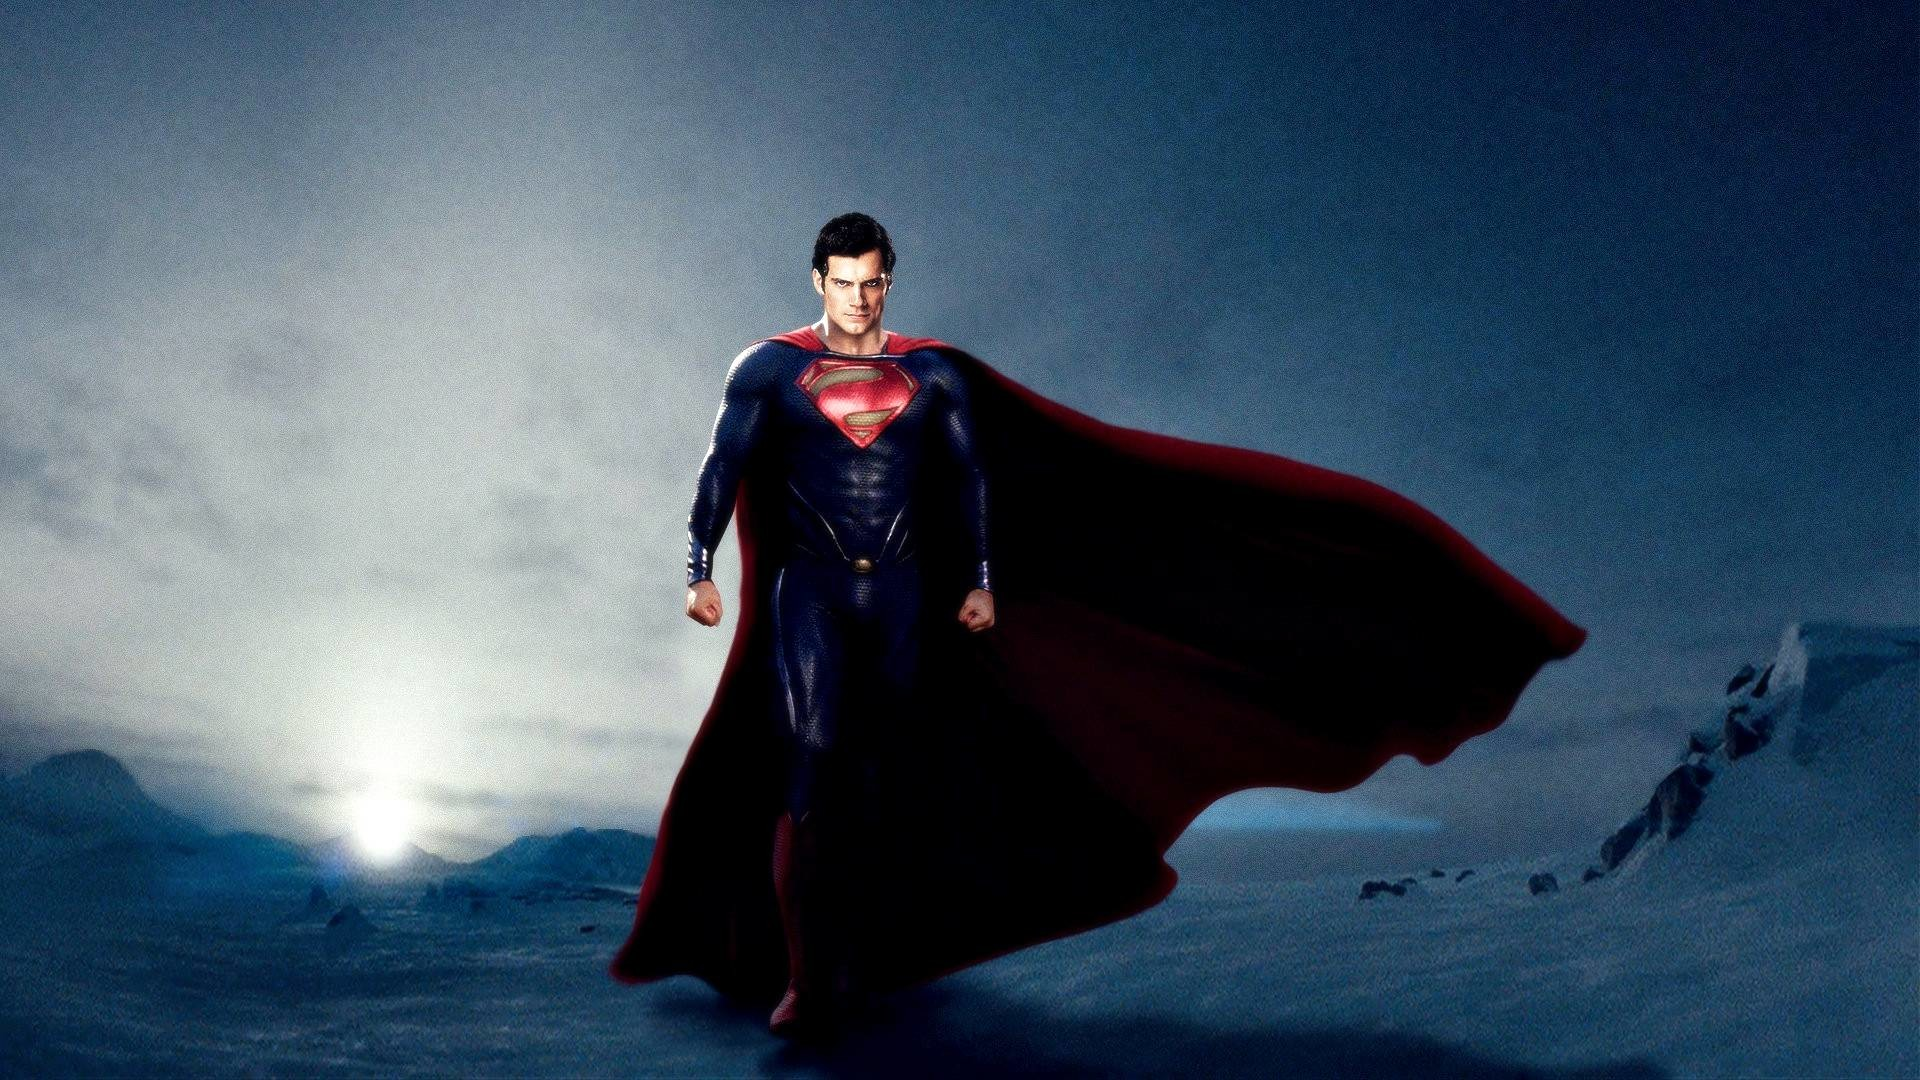 1440x2560 Superman Wallpapers For Mobile And Desktop